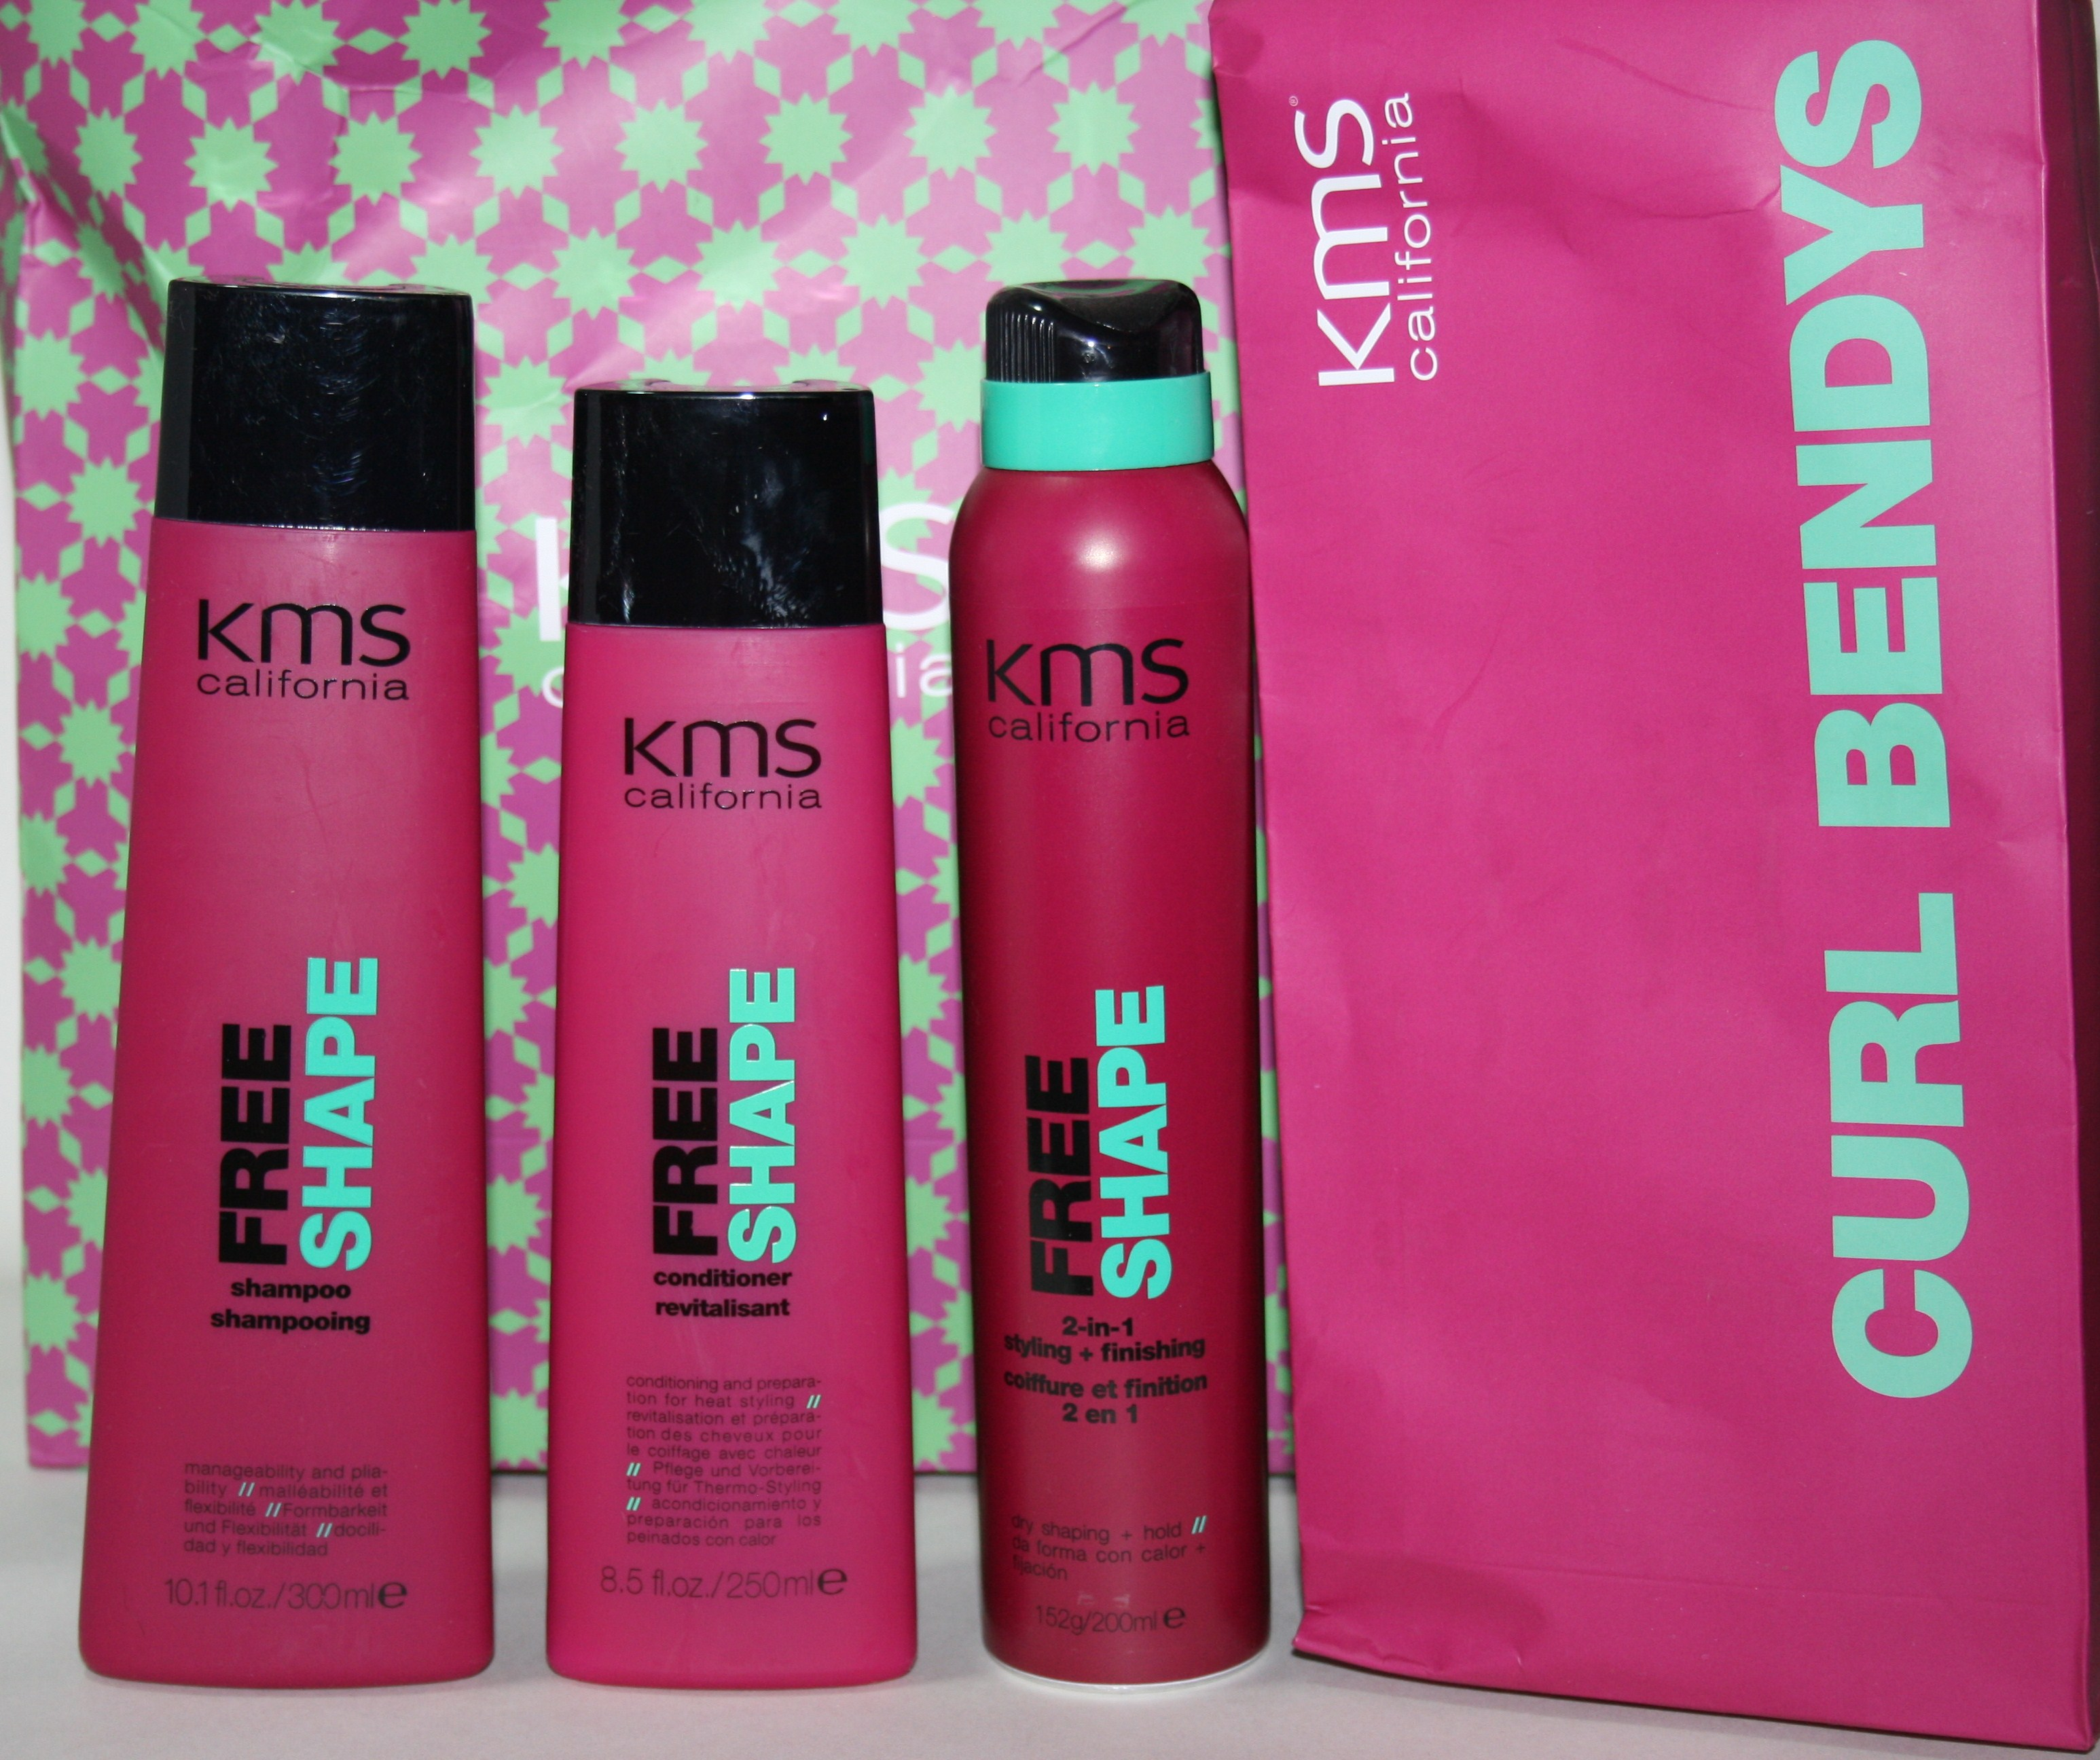 12 Gifts of Christmas: KMS California Create Waves Kit